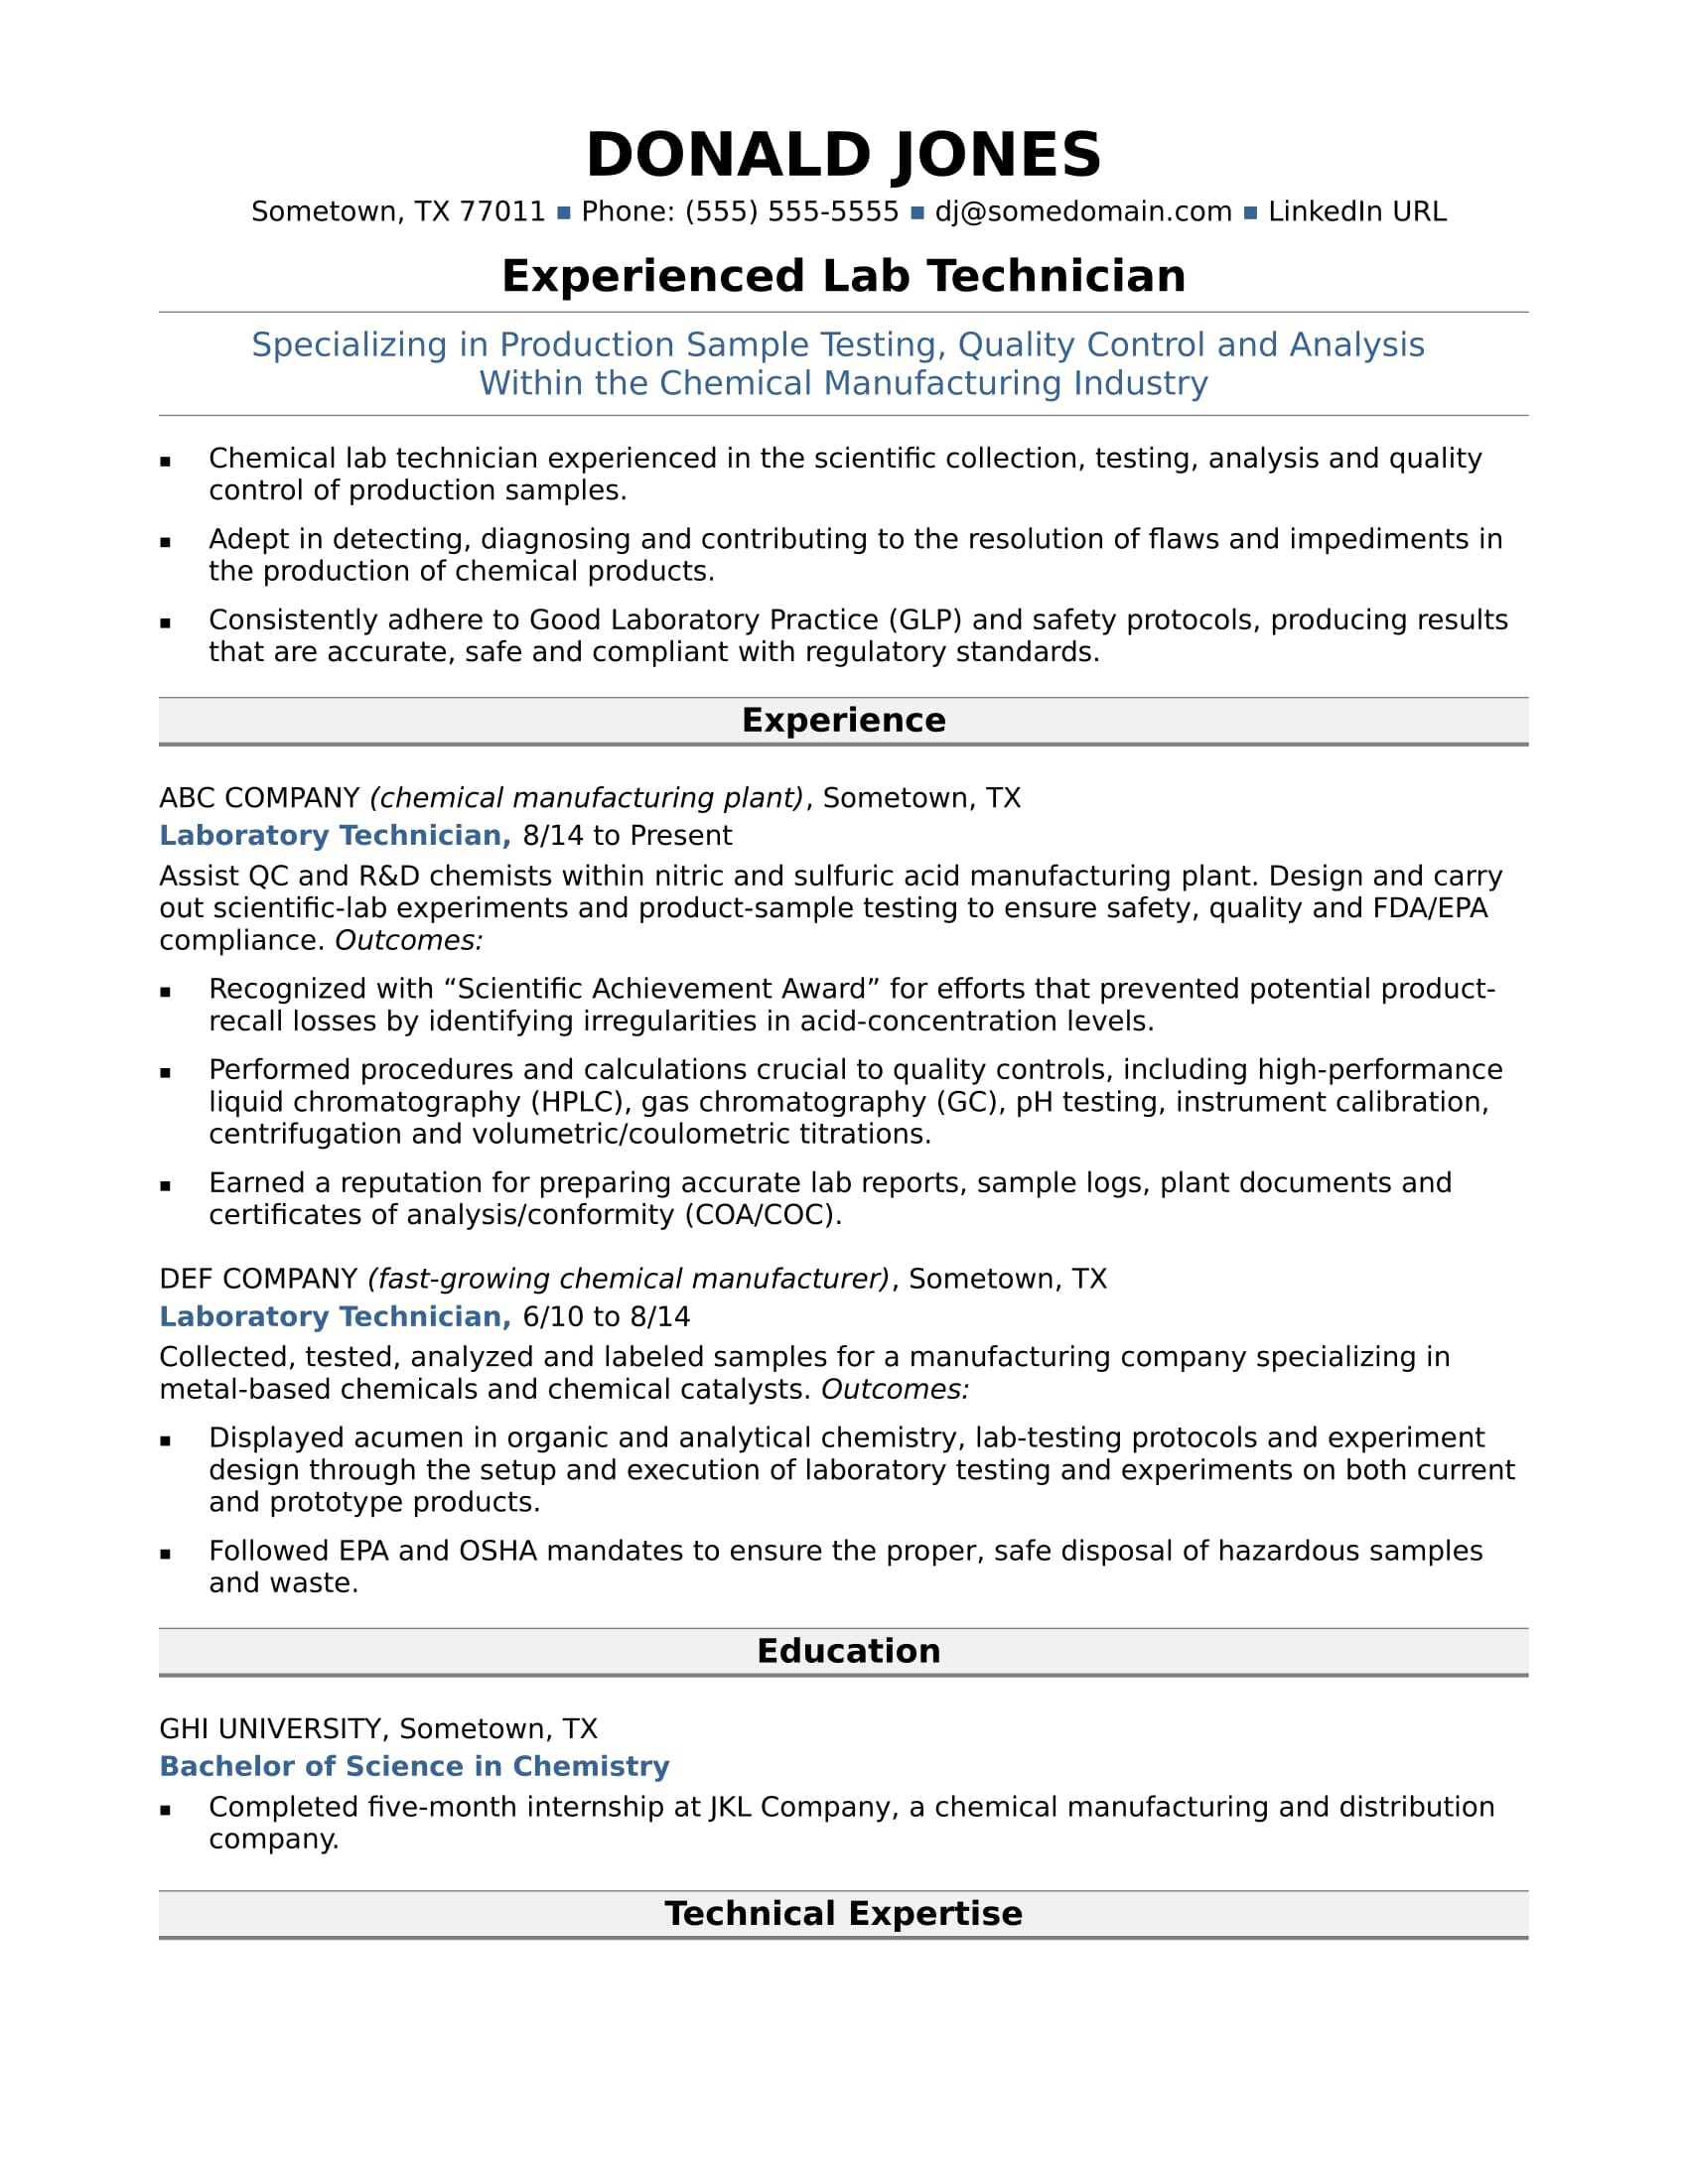 Midlevel Lab Technician Resume Sample Monster Com